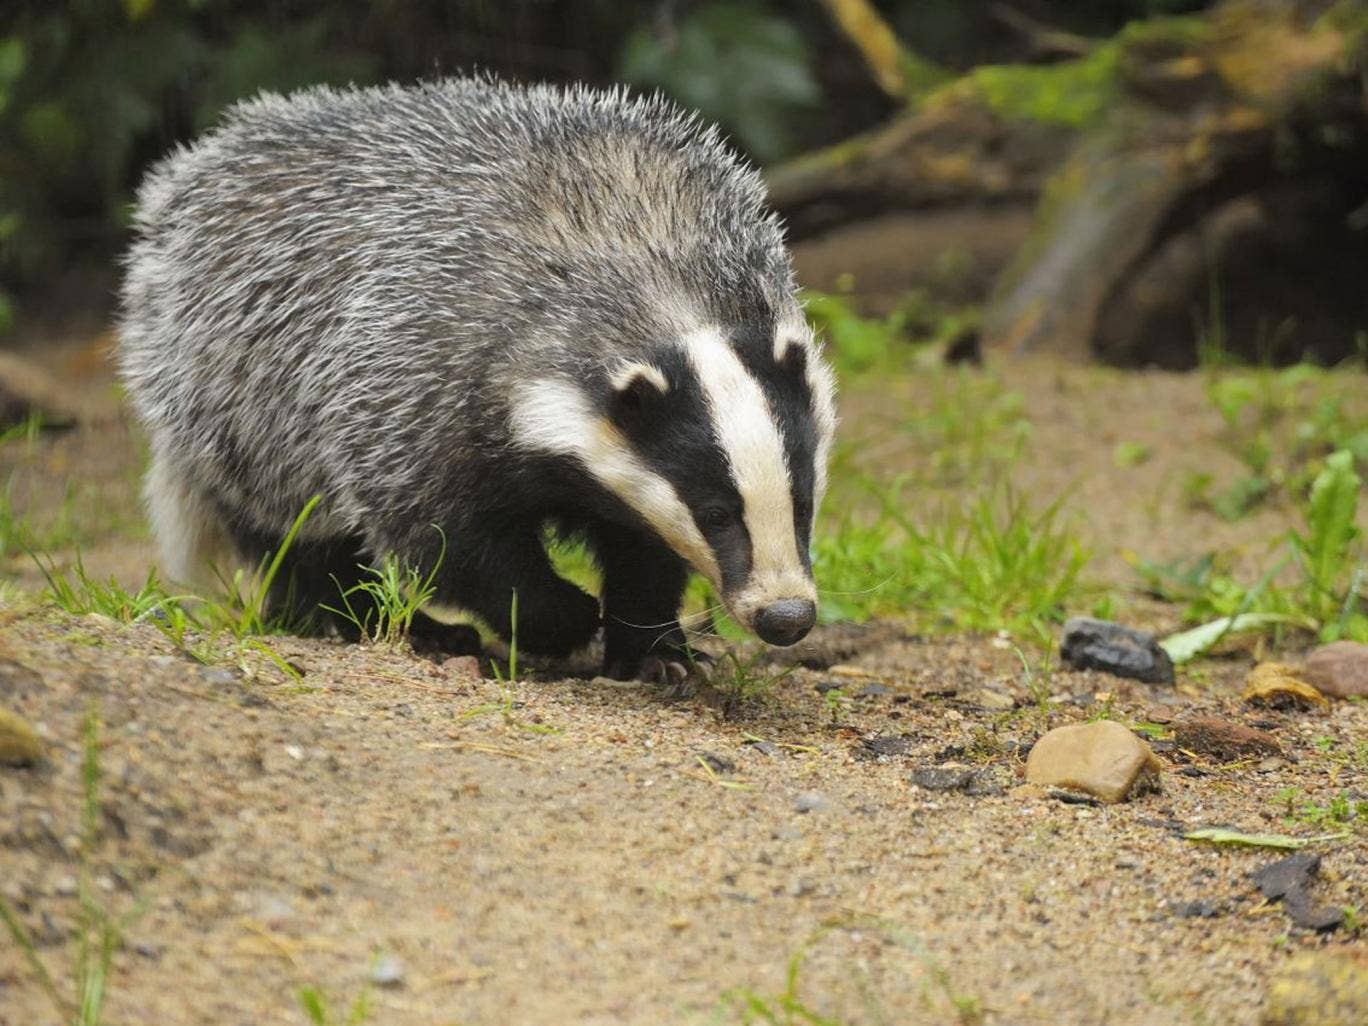 Defra have refused to comment on how many badgers have been killed